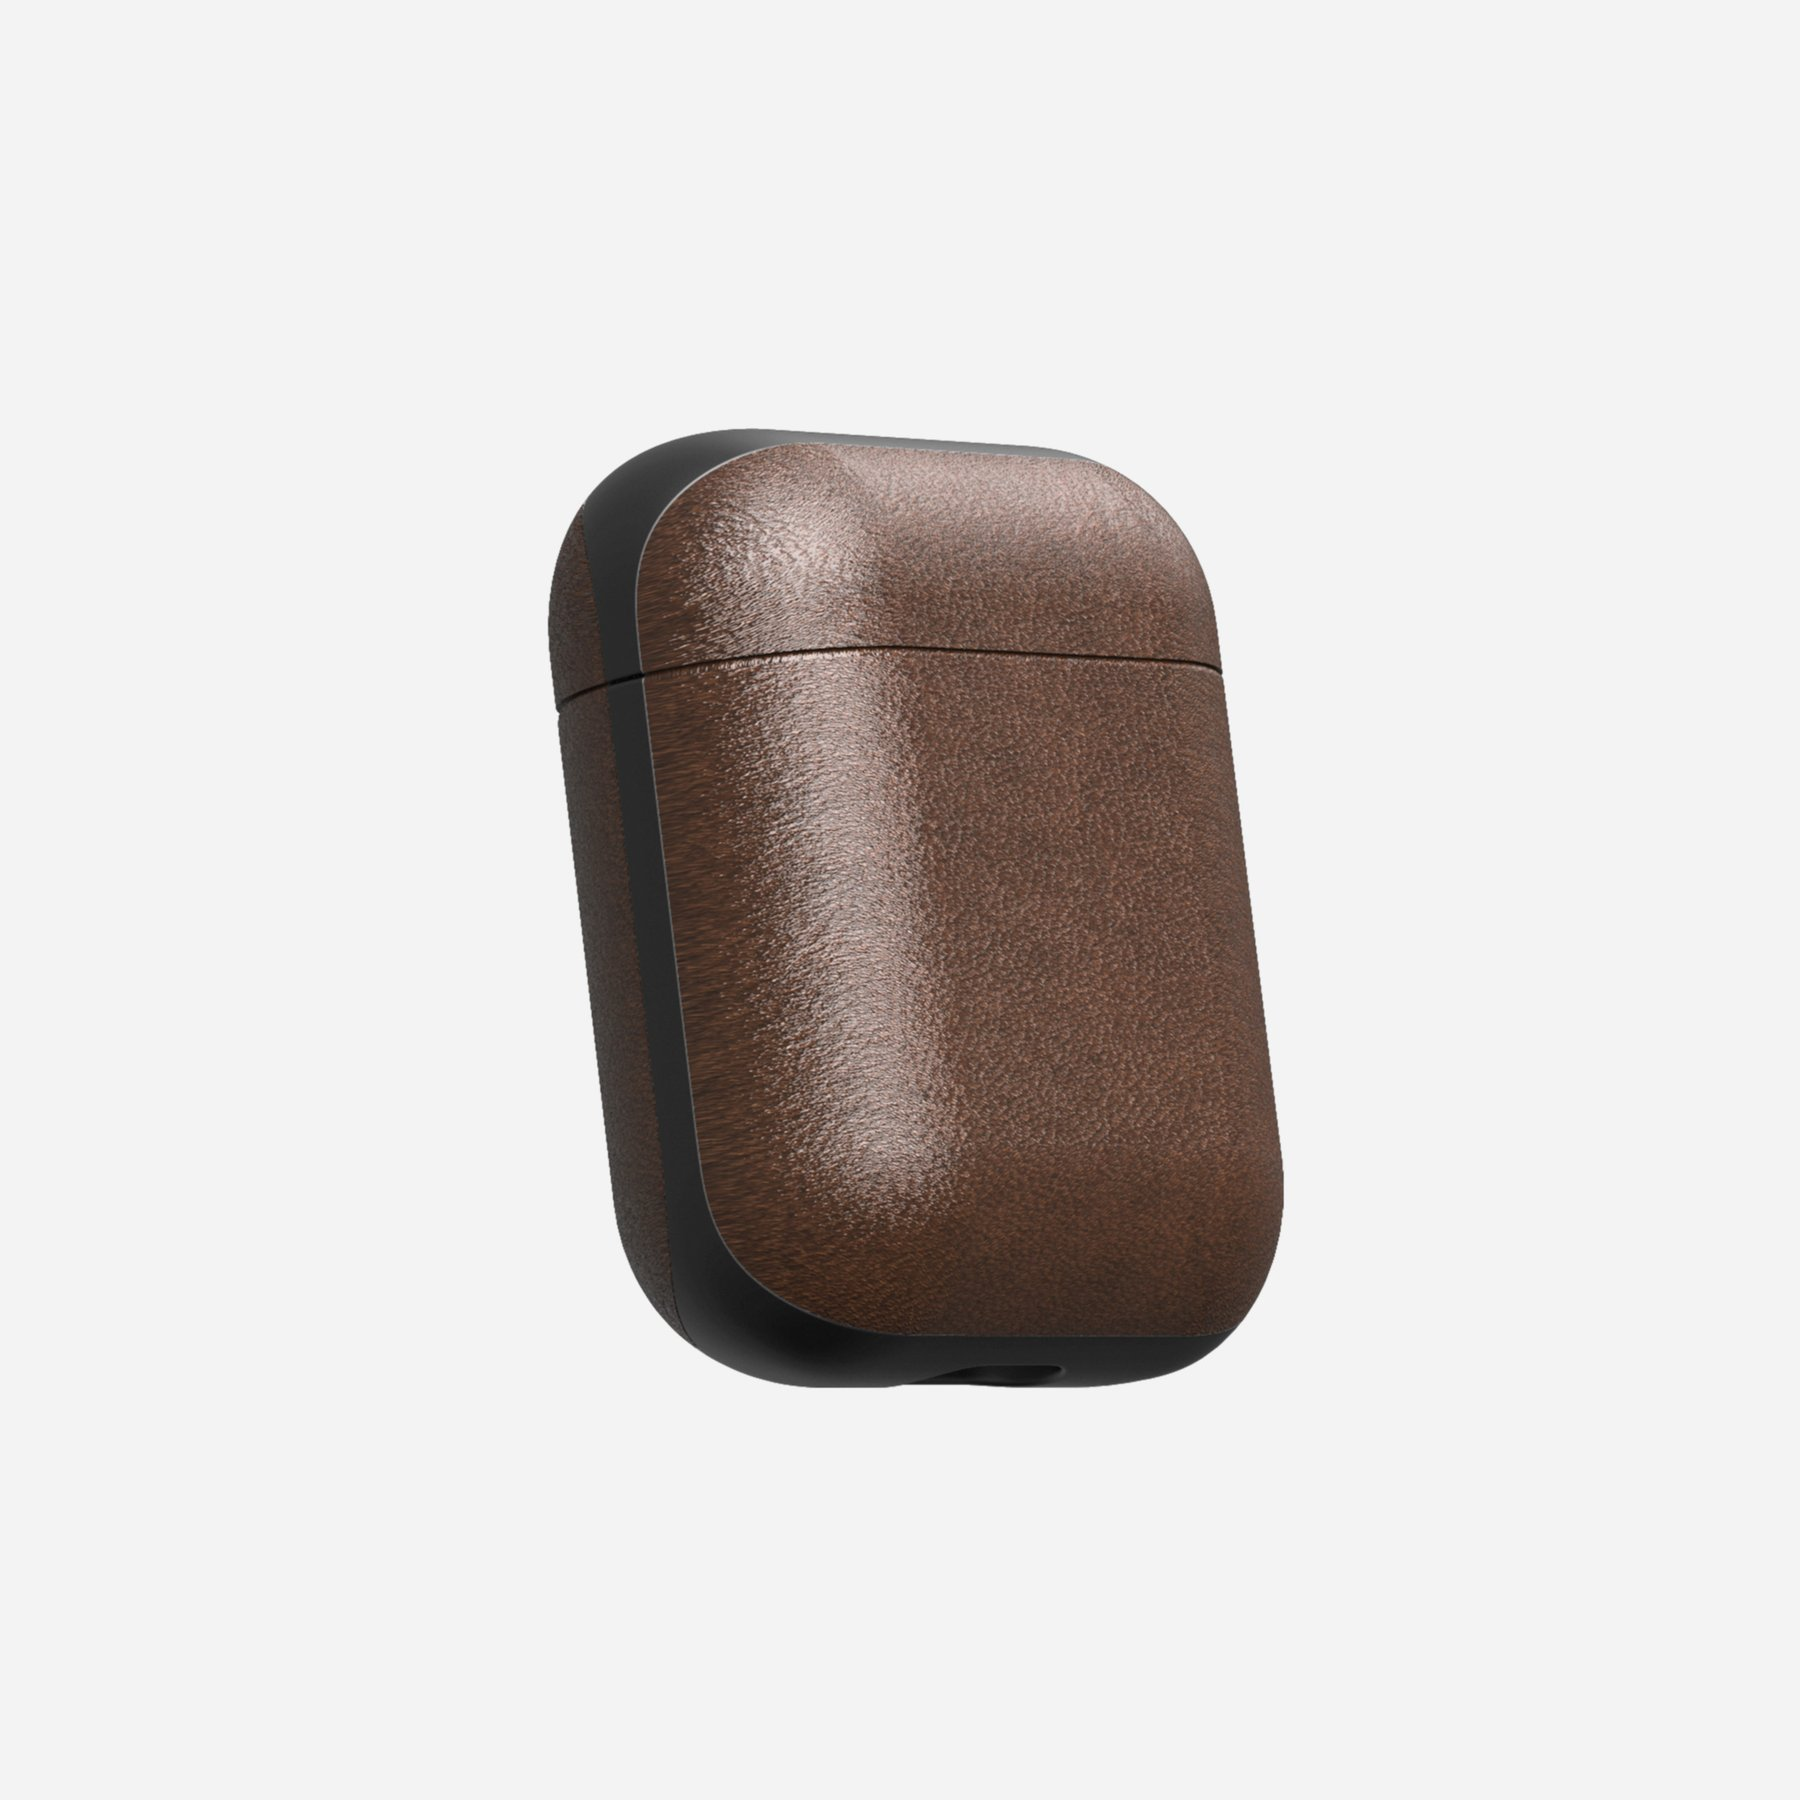 Nomad Airpod Case, Leather Rustic Brown